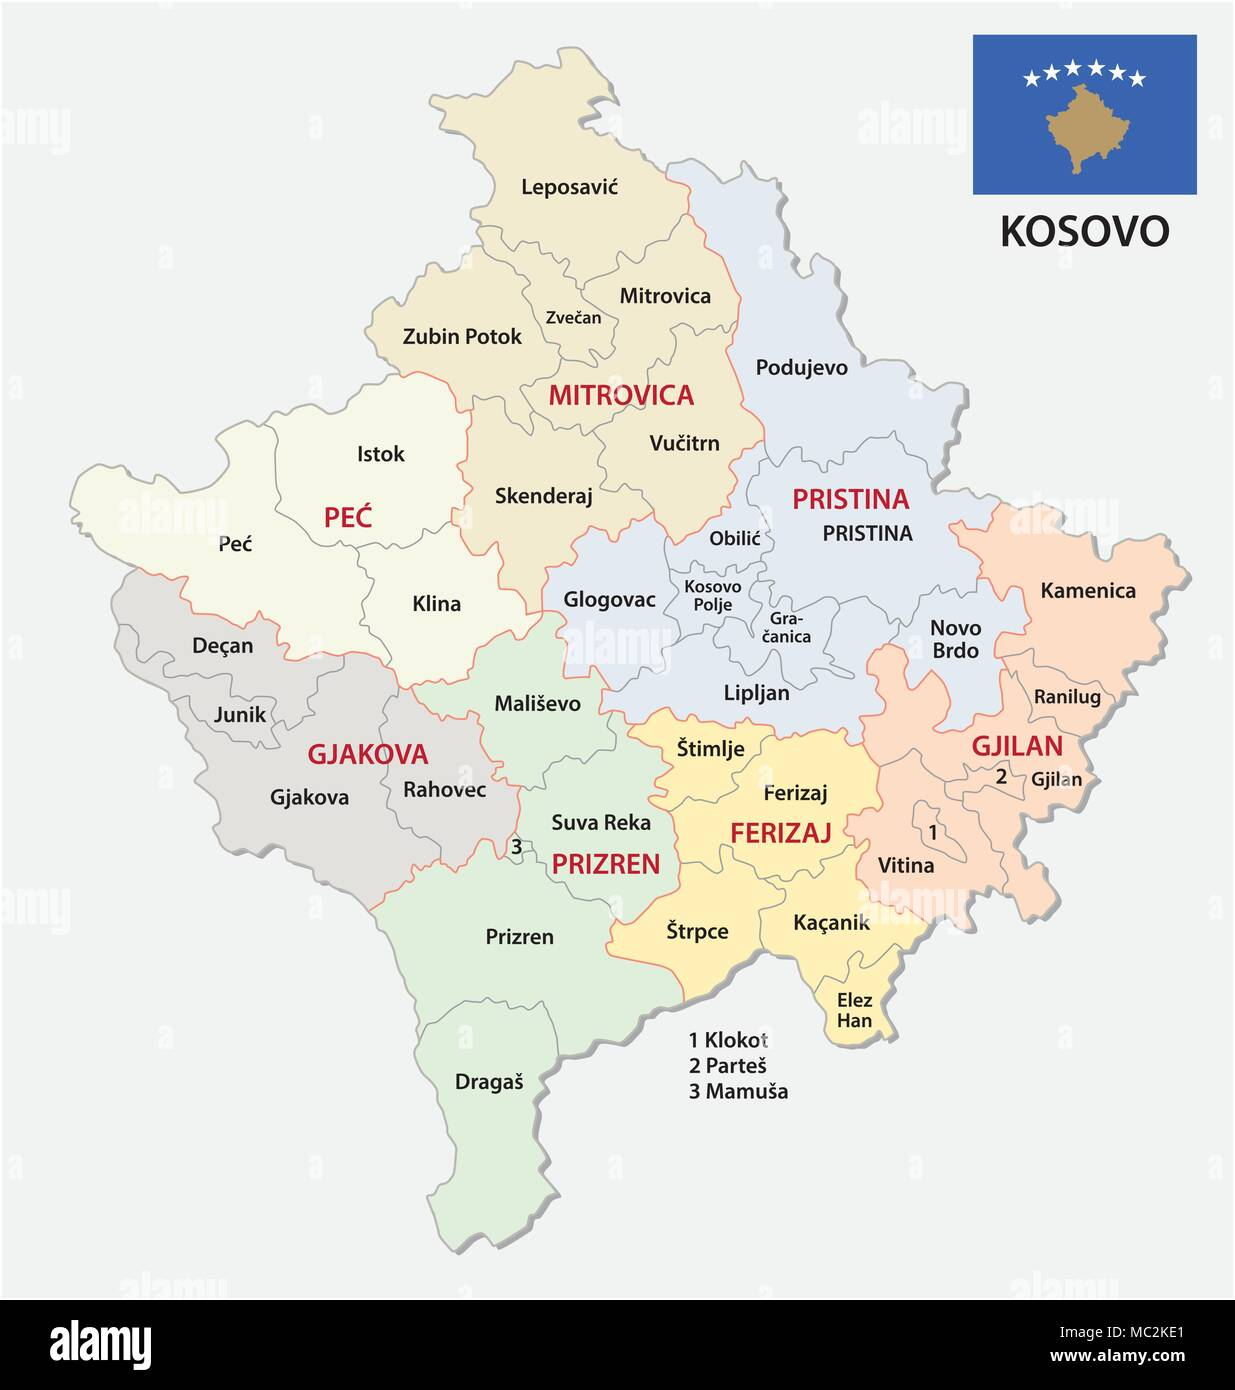 Kosovo Political Map kosovo administrative and political vector map with flag Stock